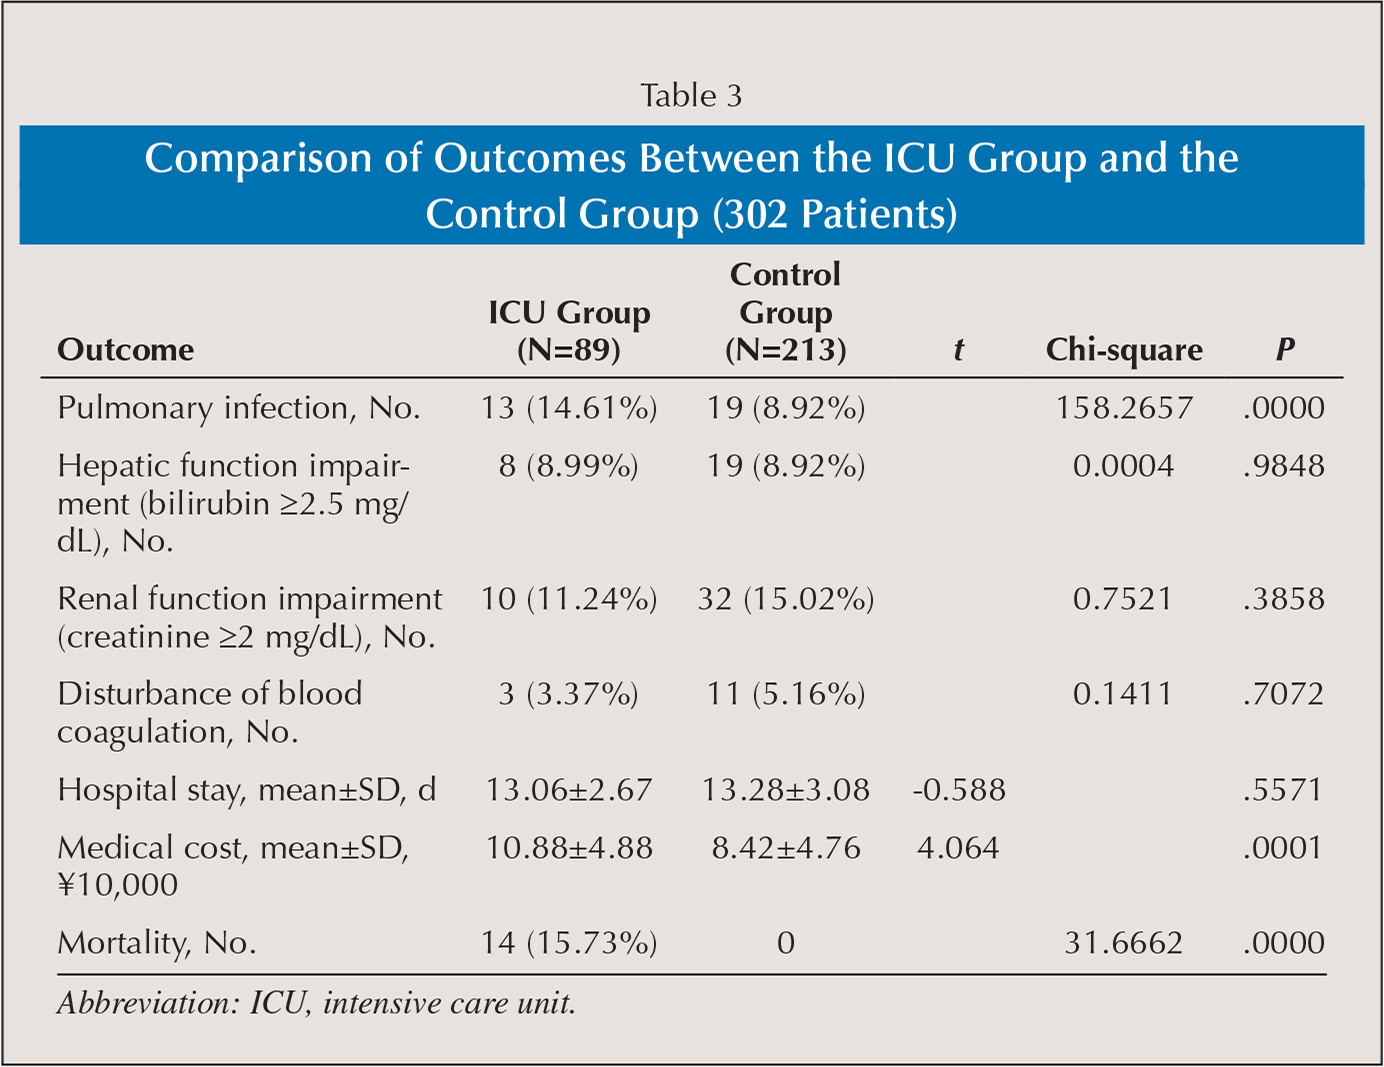 Comparison of Outcomes Between the ICU Group and the Control Group (302 Patients)